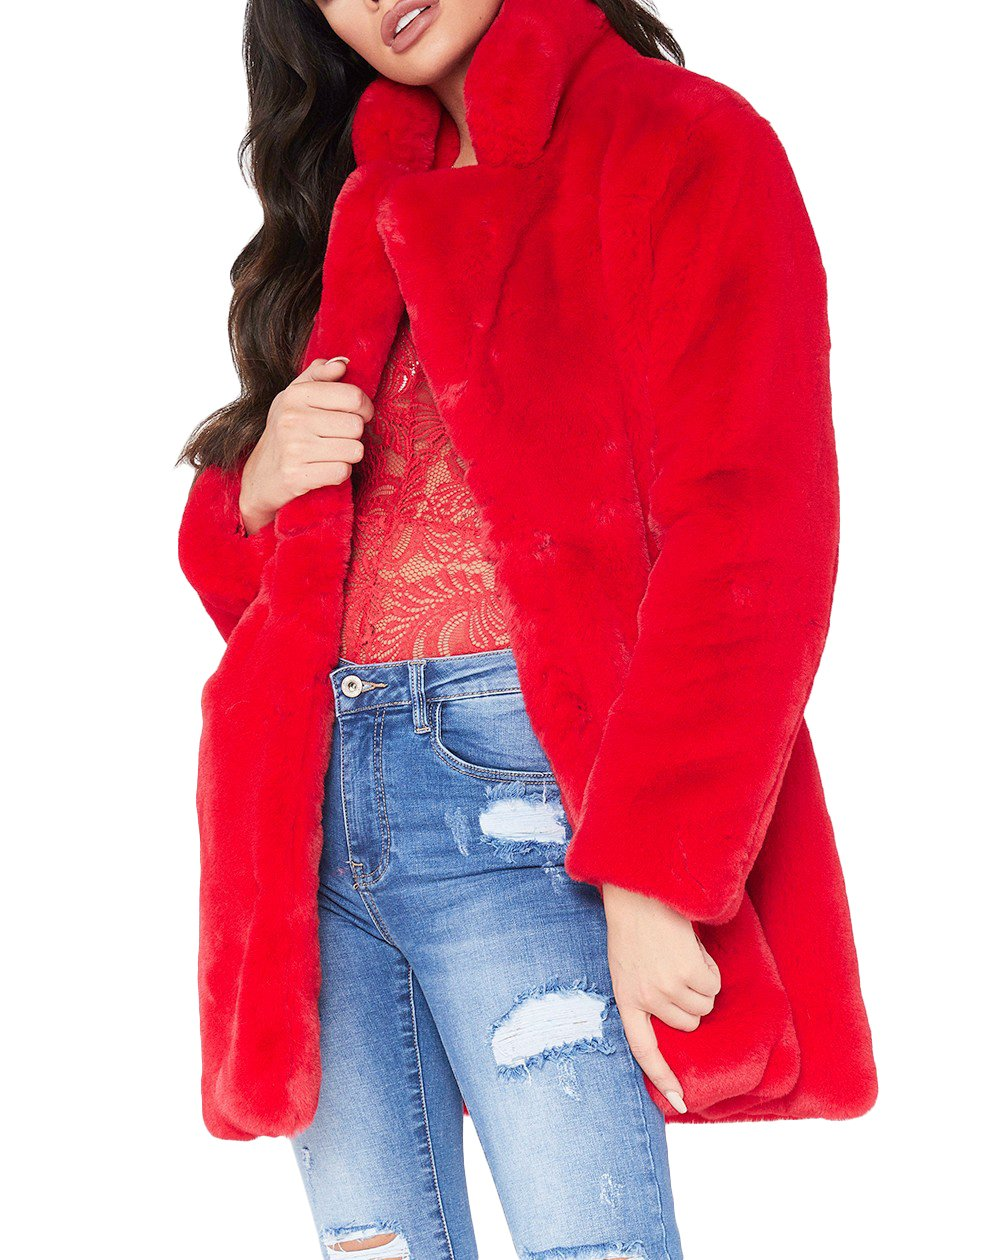 Remelon Womens Long Sleeve Winter Warm Lapel Fox Faux Fur Coat Jacket Overcoat Outwear with Pockets Red S by Remelon